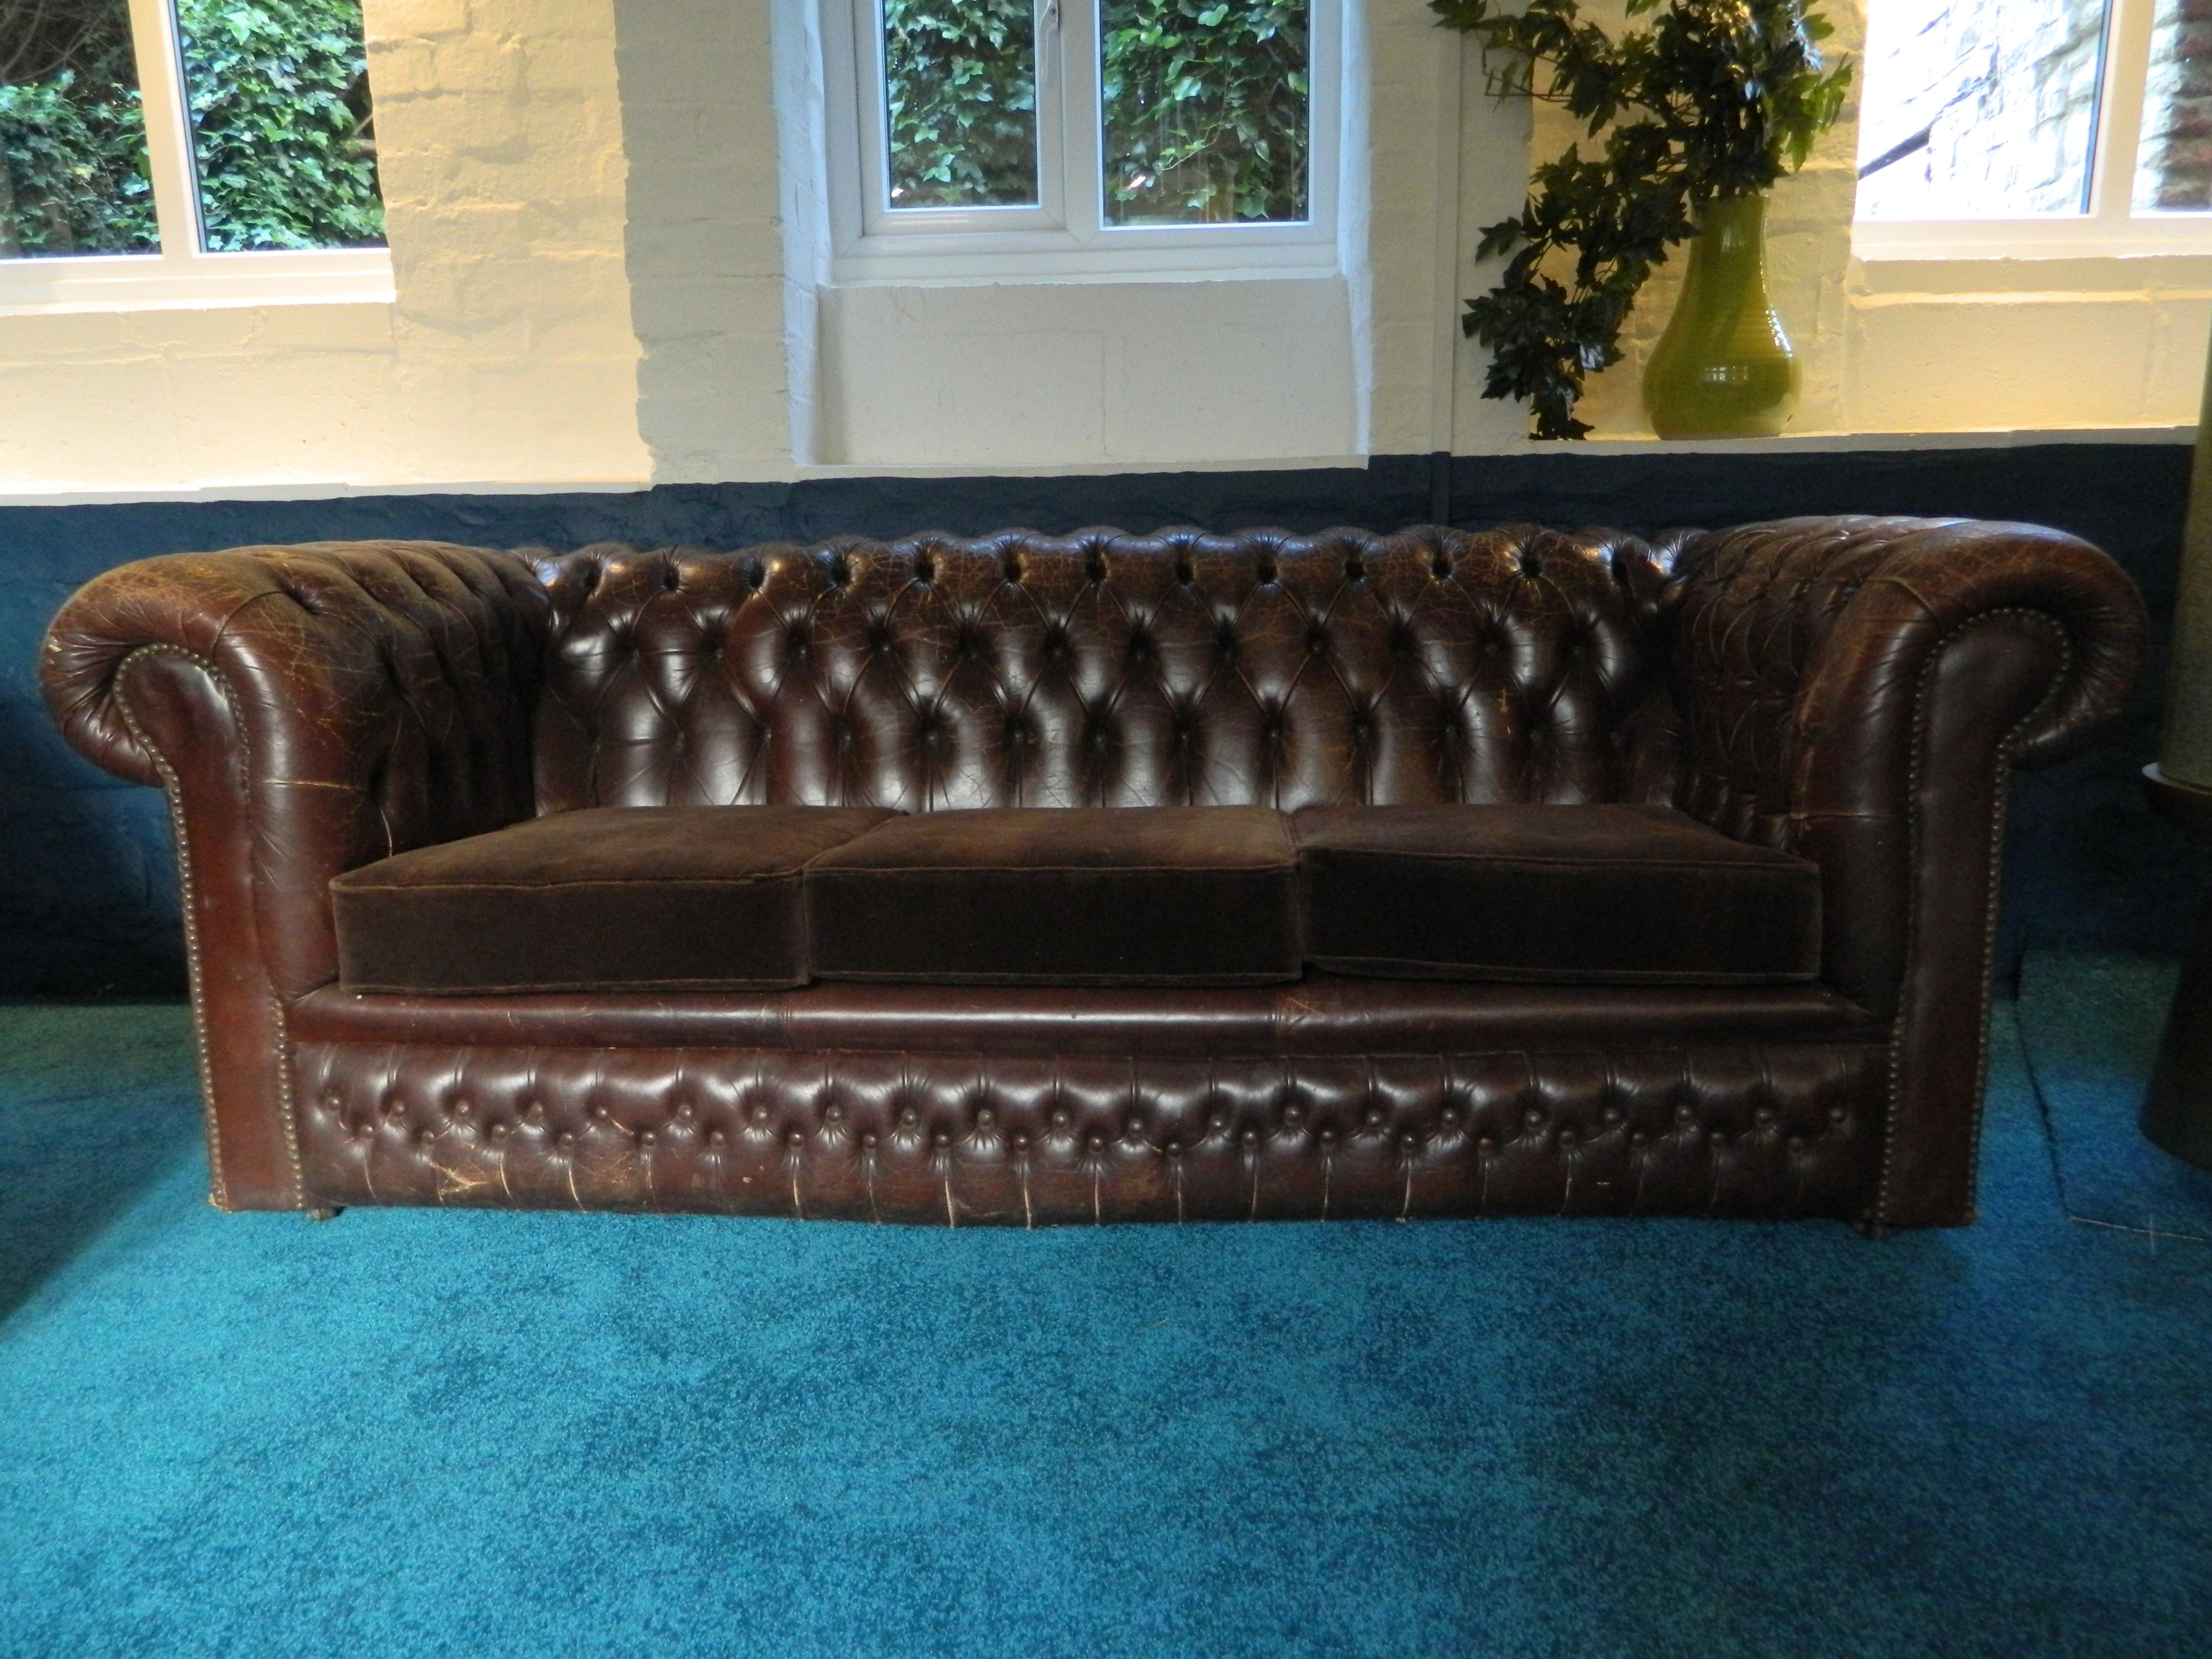 cost to reupholster chesterfield sofa serta rta palisades collection 73 in fabric reviews classic vintage leather with reupholstered